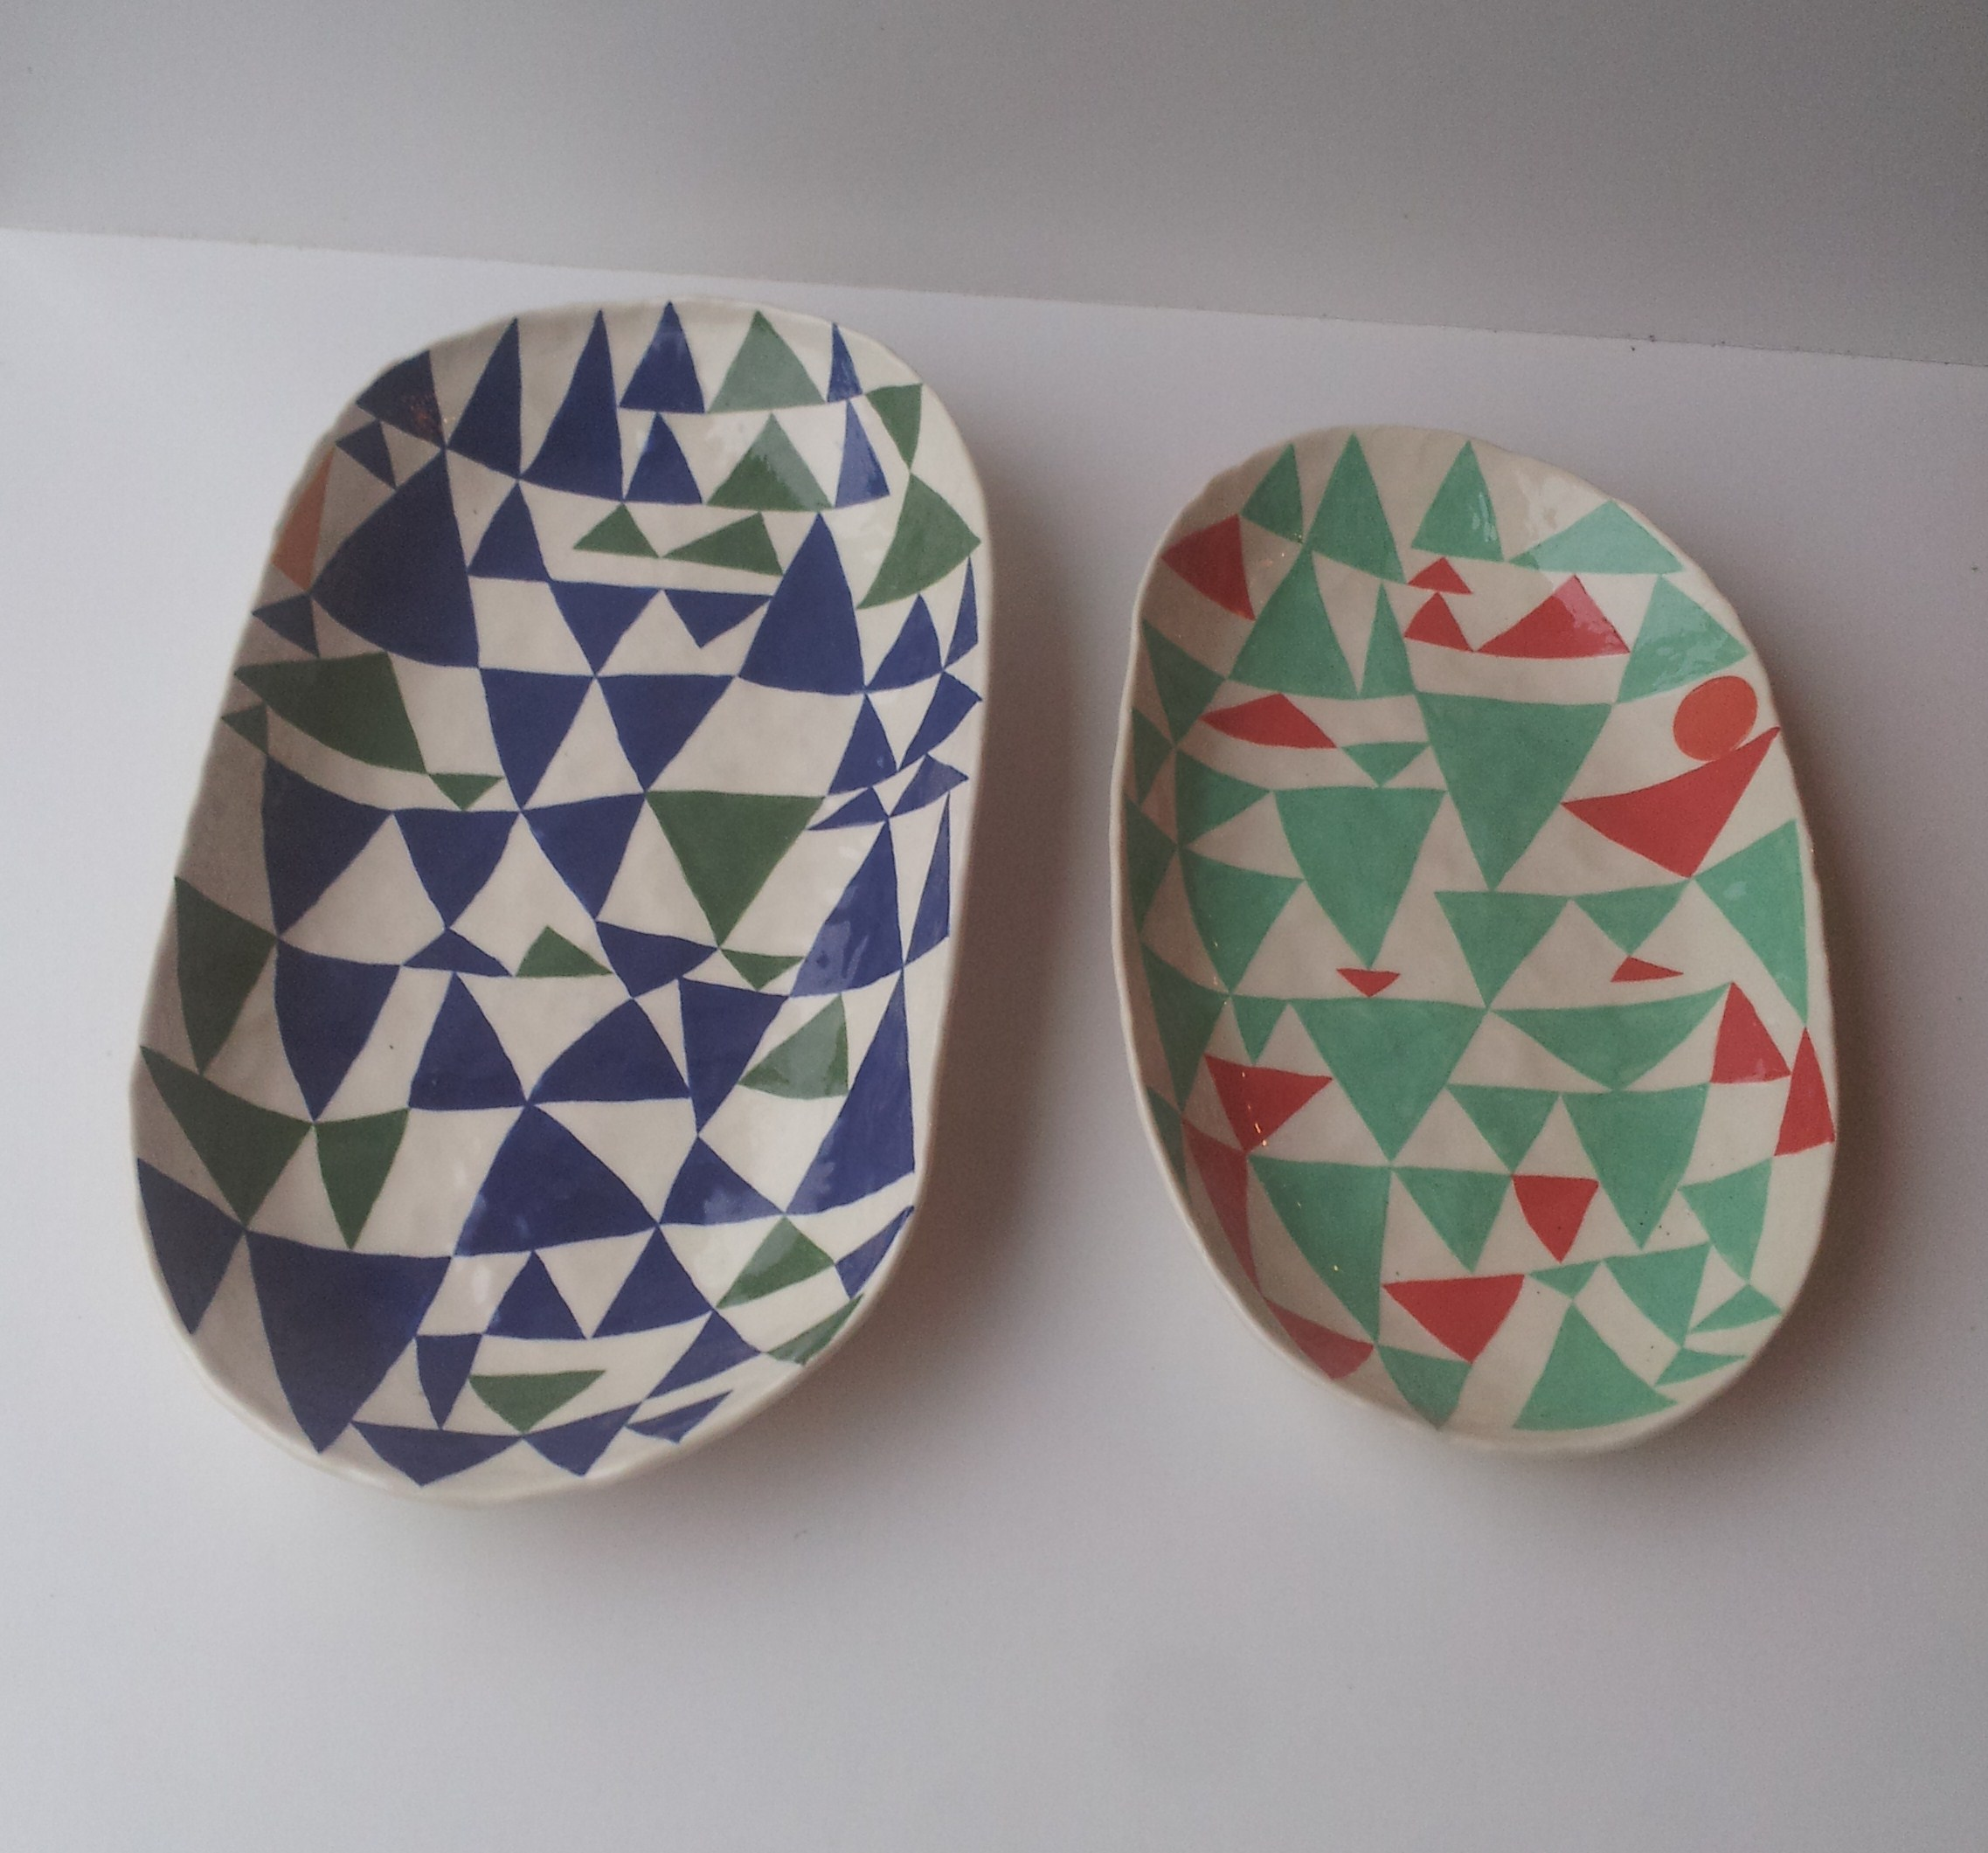 Andrew Ludick, Triangle Plate (green blue) 30 x 20 cm EUR 290 and Triangle Plate (green red) 25 x 18cm, EUR 240